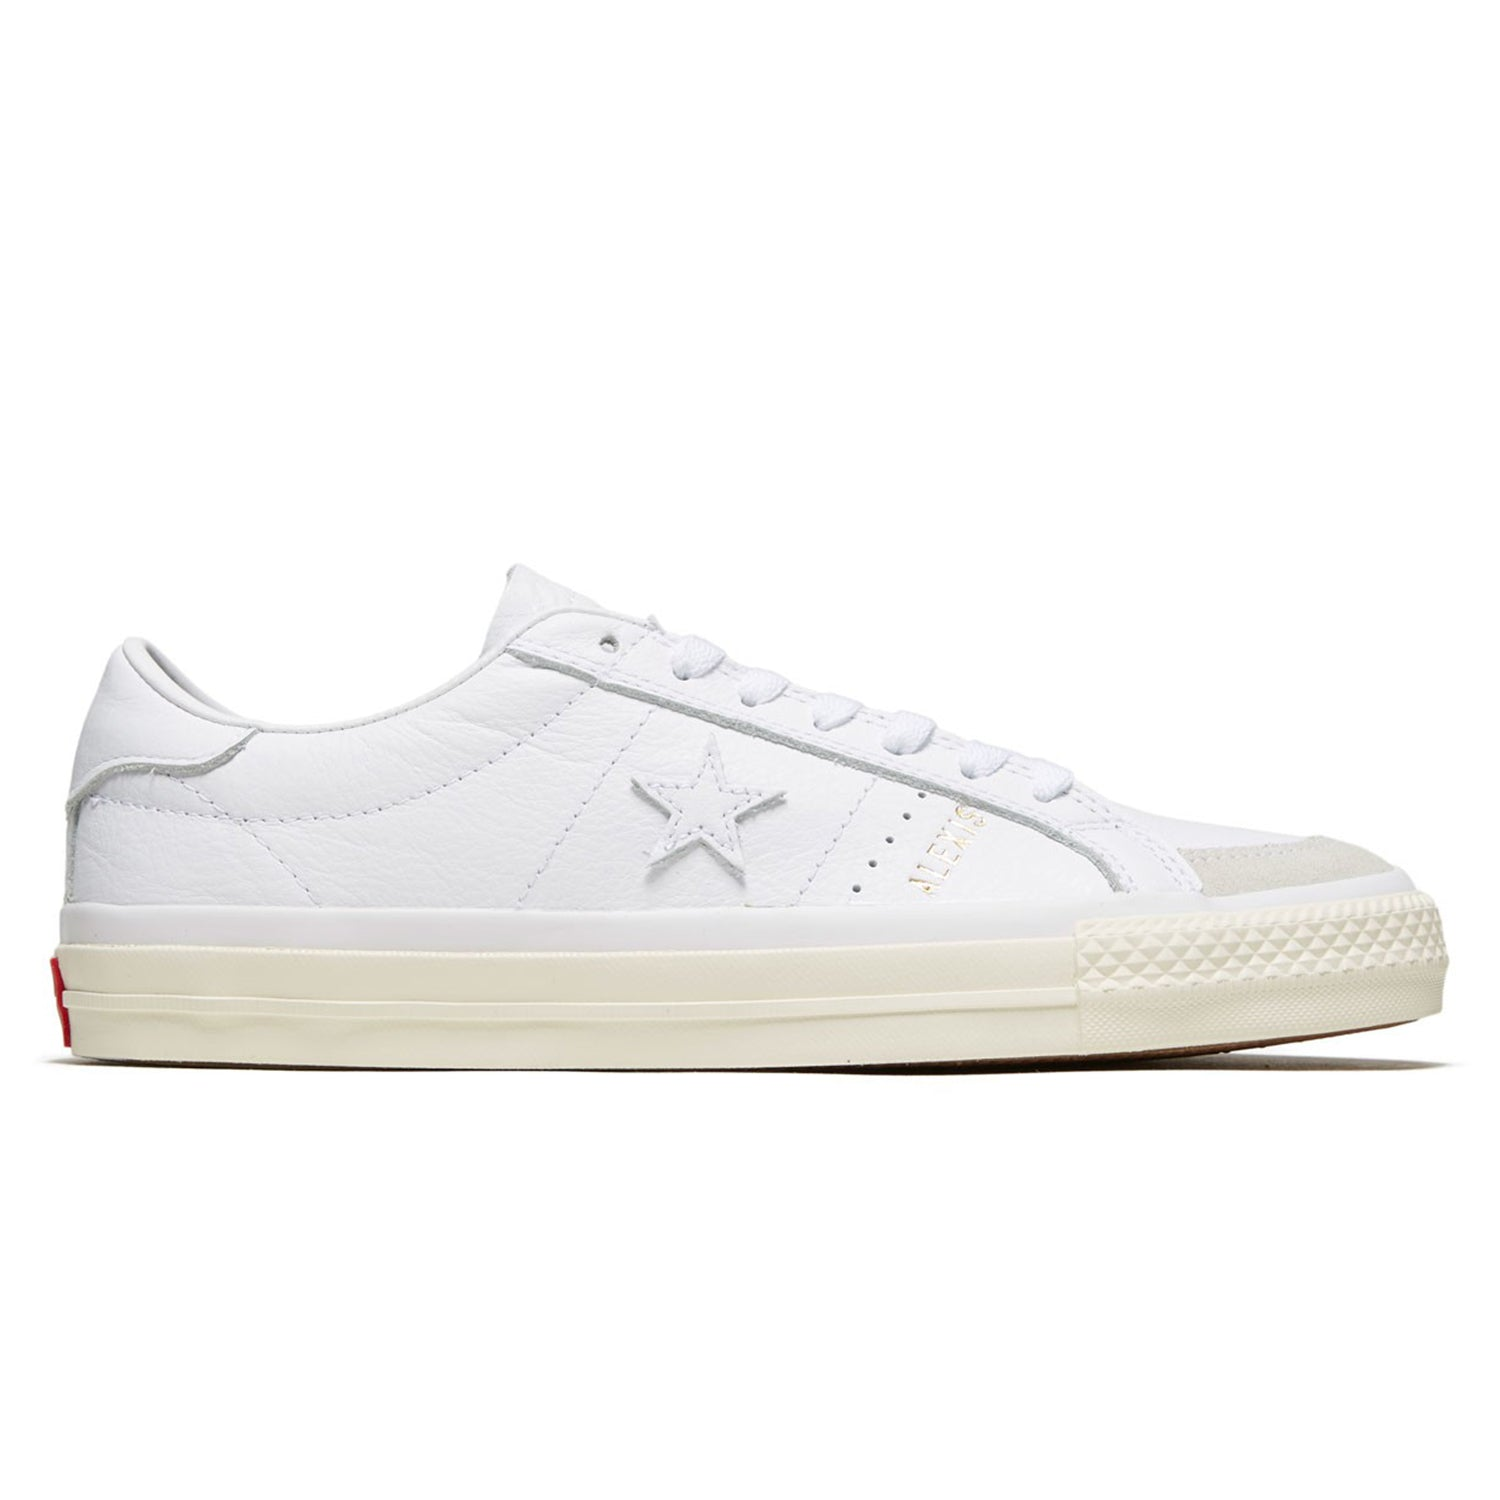 Converse CONS One Star Pro Alexis Sablone OX White/Enamel Red